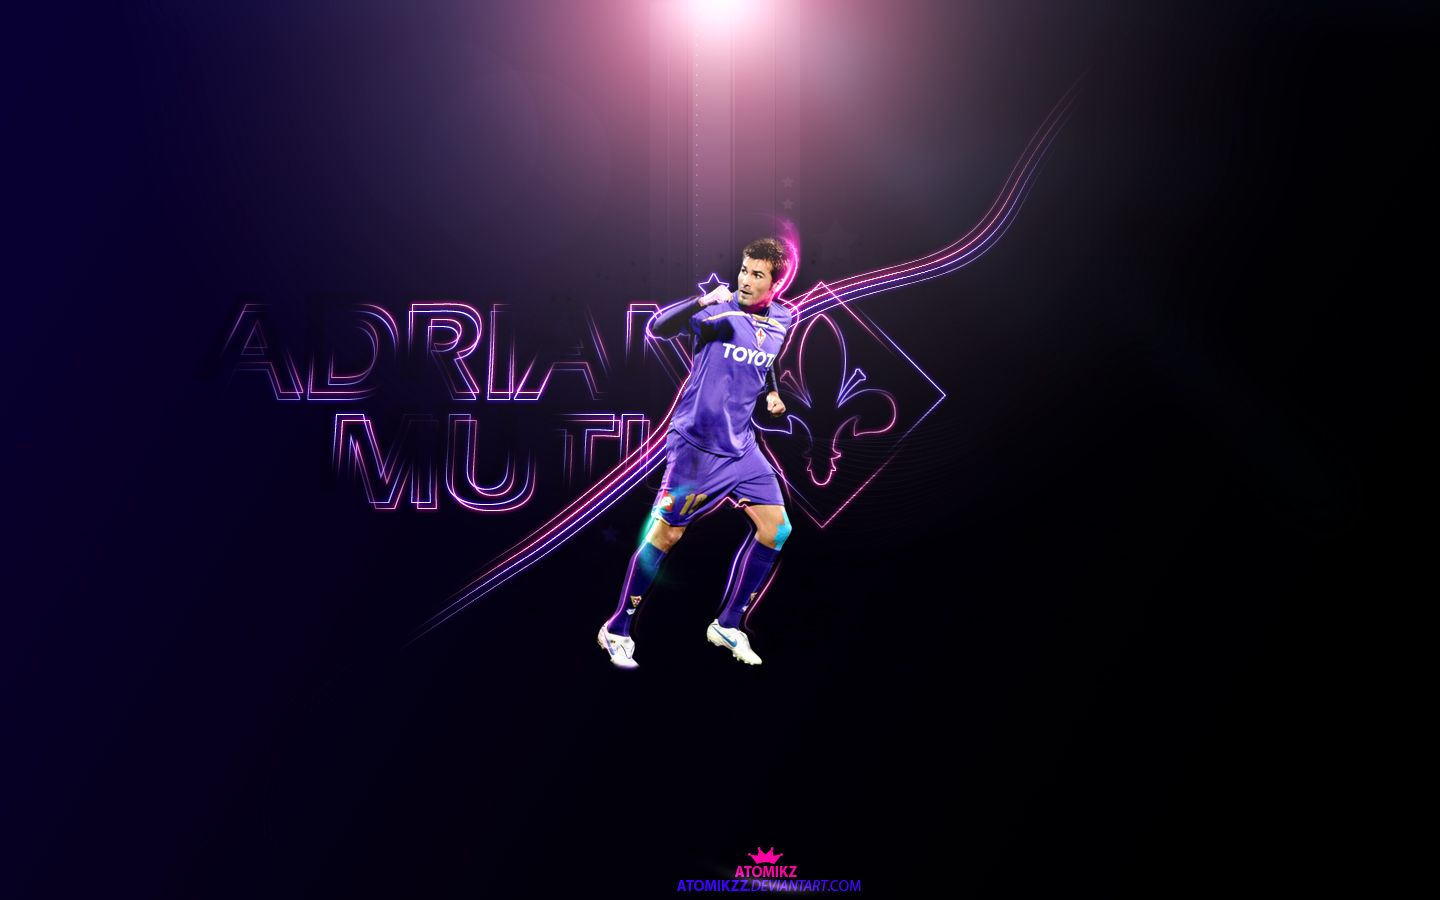 adrian mutu, fiorentina, wallpapers , Pc backgrounds, free photos - HD wallpaper desktop backgrounds